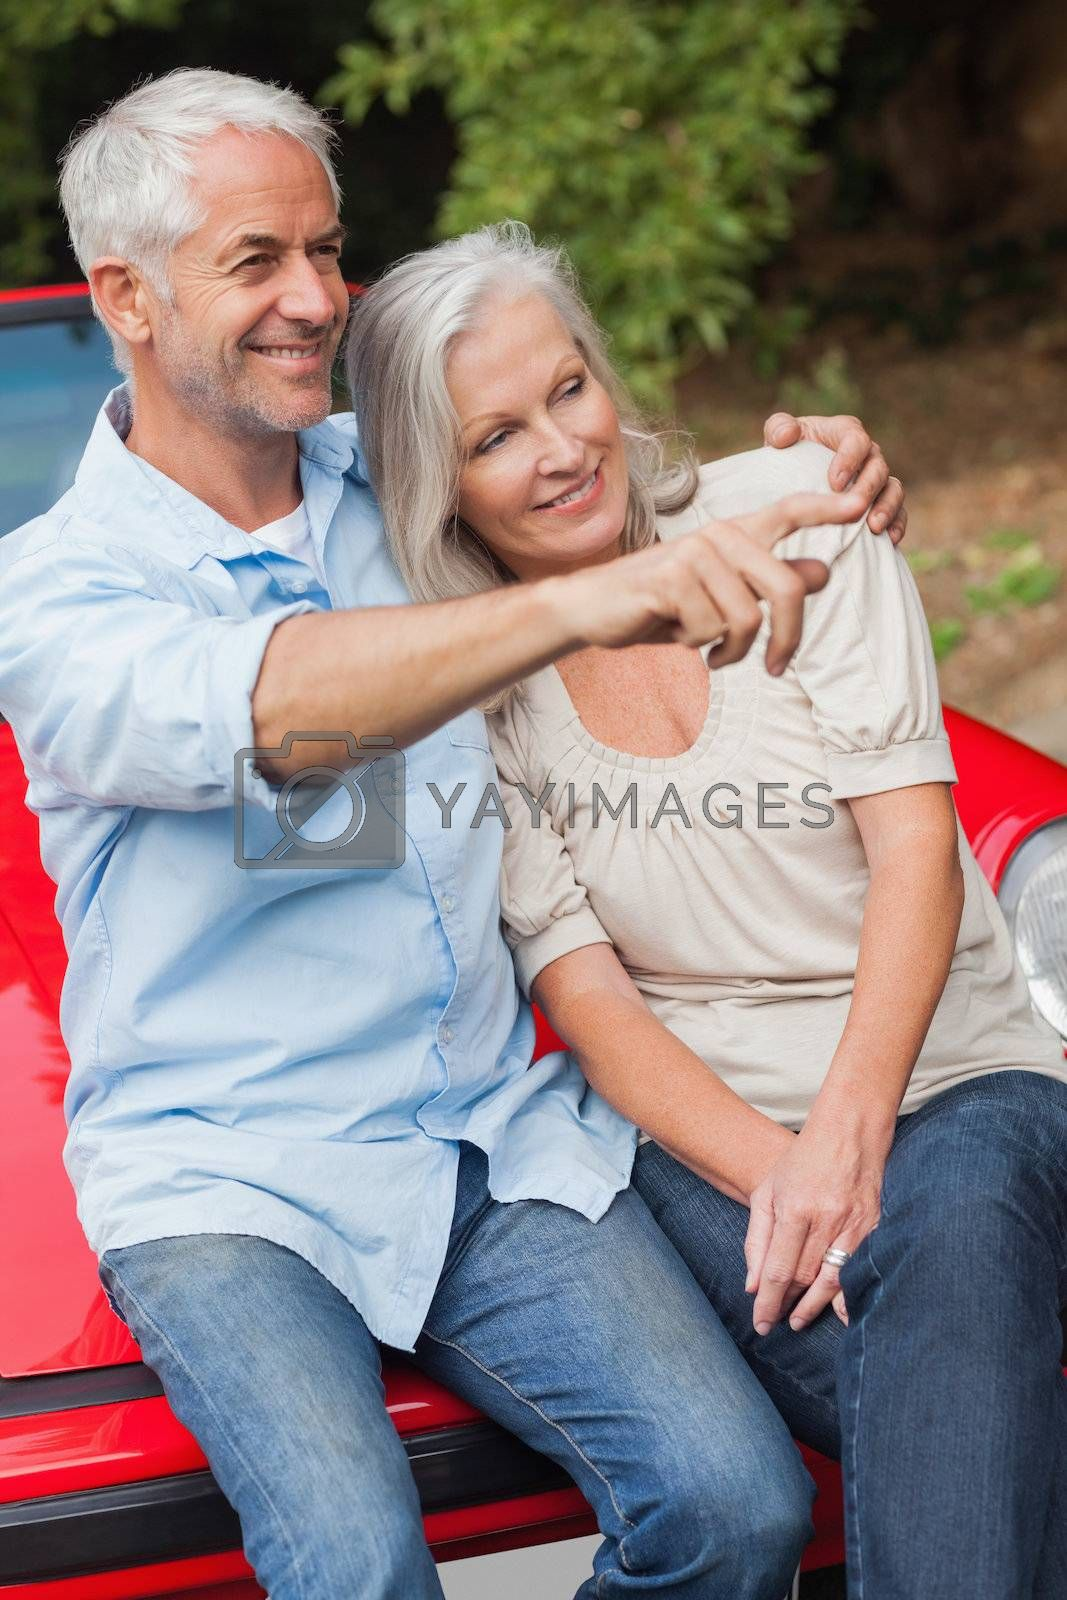 Smiling mature couple sitting on their red convertible by Wavebreakmedia